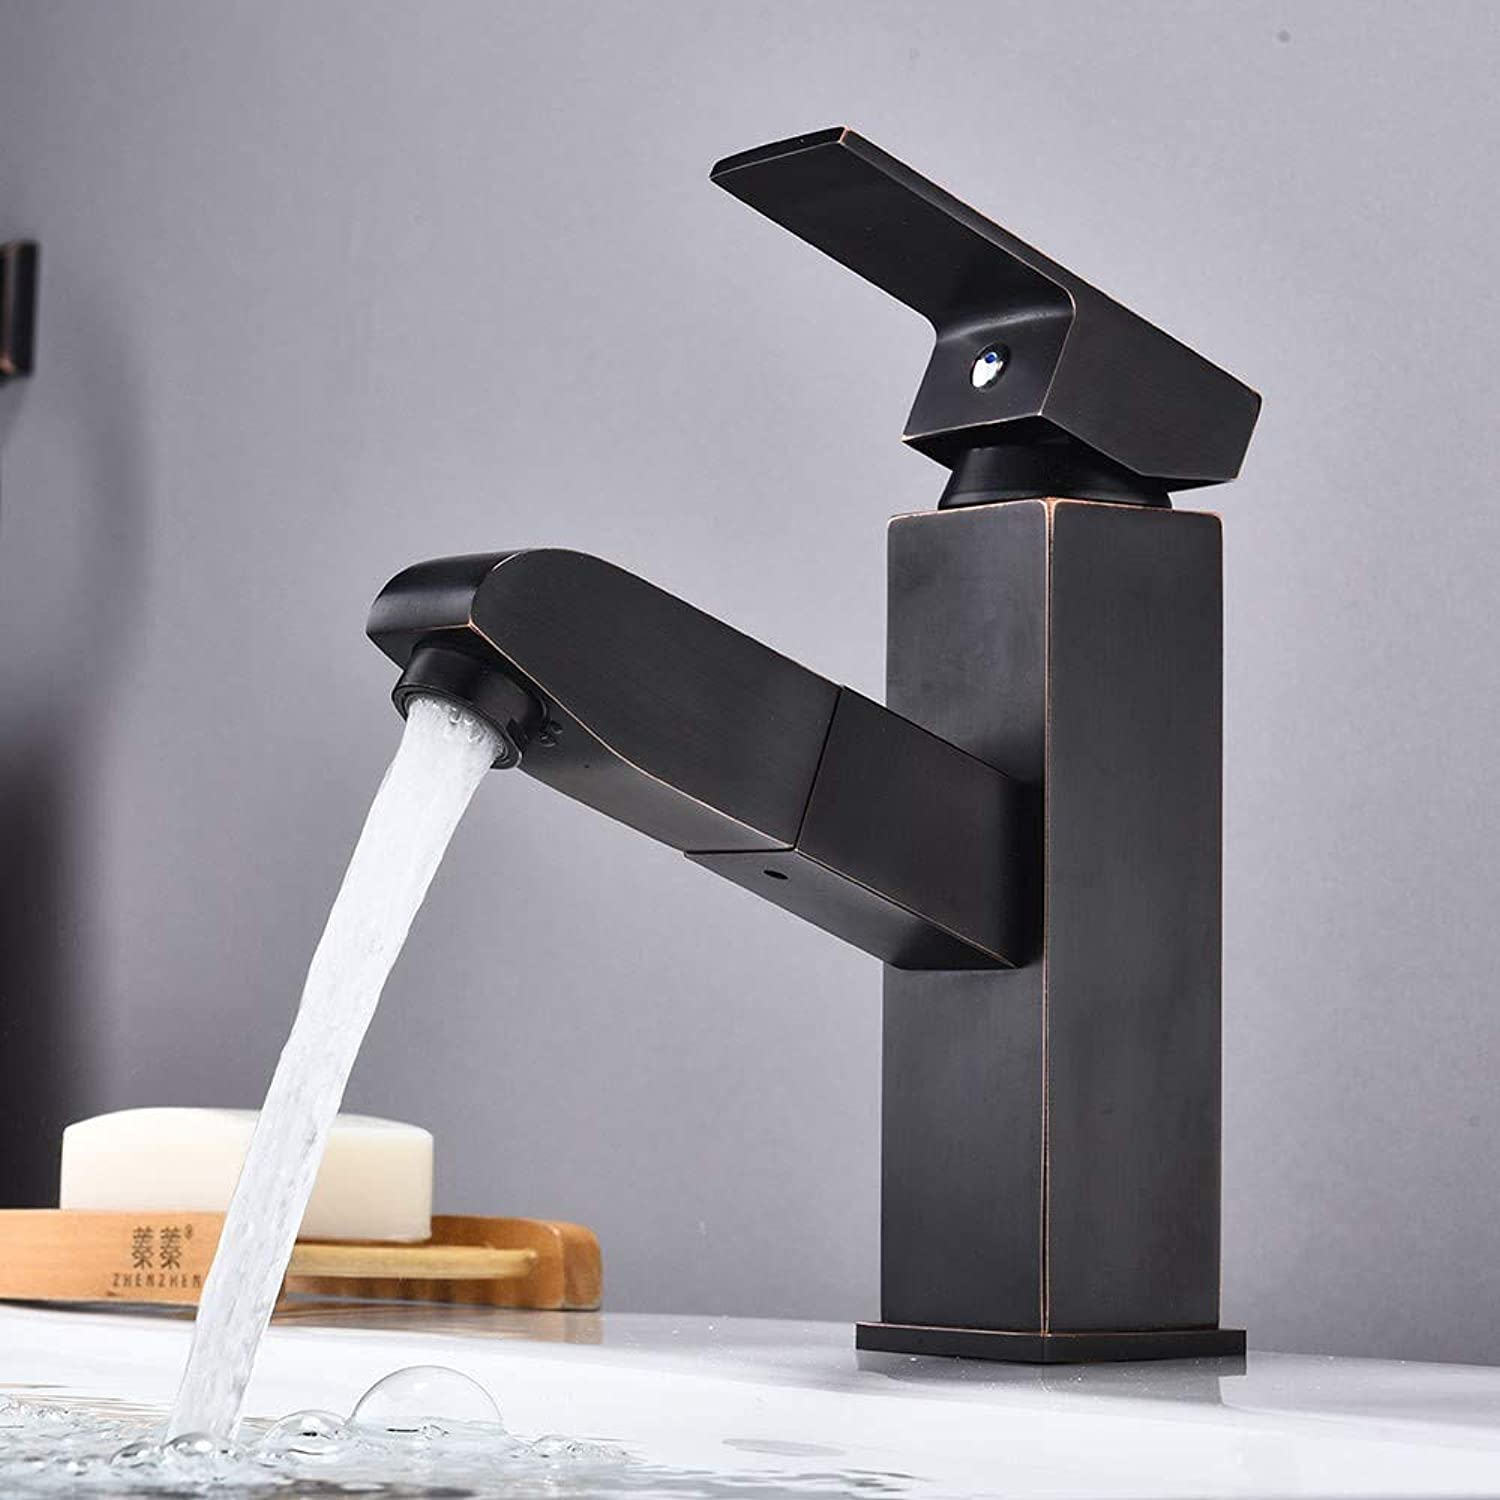 Bathroom Sink Taps Retro Basin Faucet Black Pull-Out Brass Mixer Mixing Faucet Bathroom Creative Single Handle Faucet